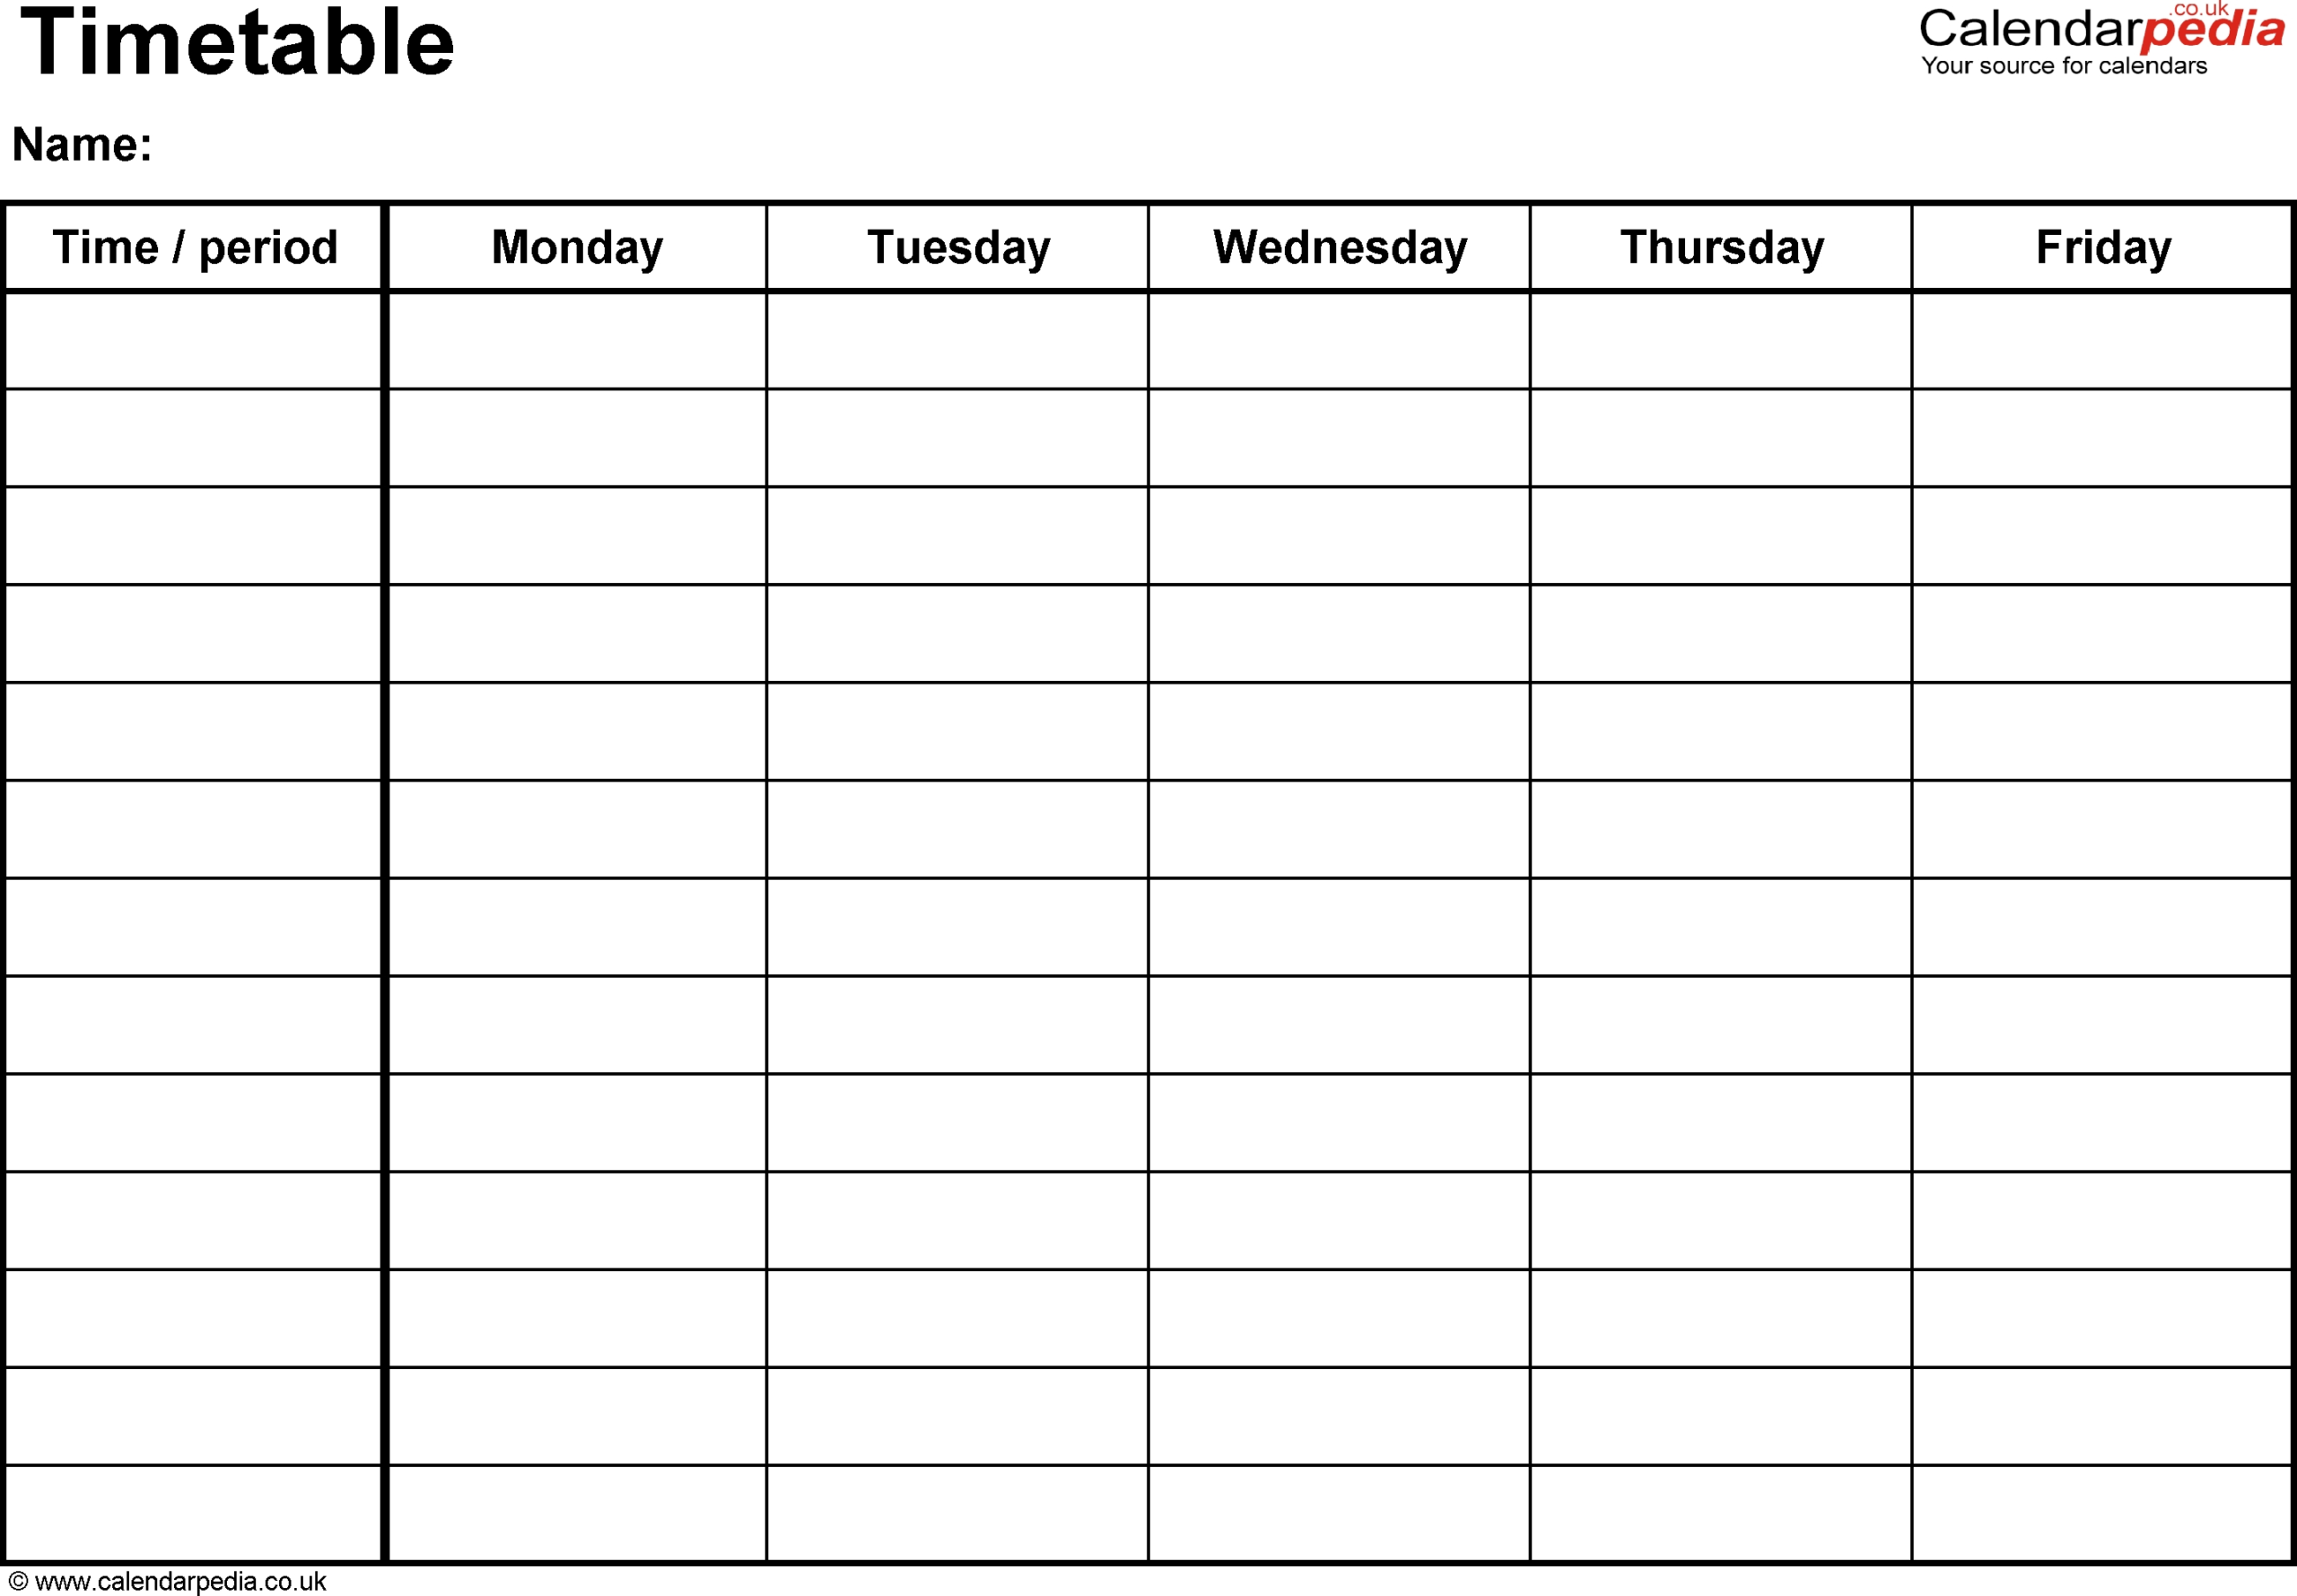 5 Day Week Calendar Template Excel | Free Calendar in One Week Calendar Template Excel